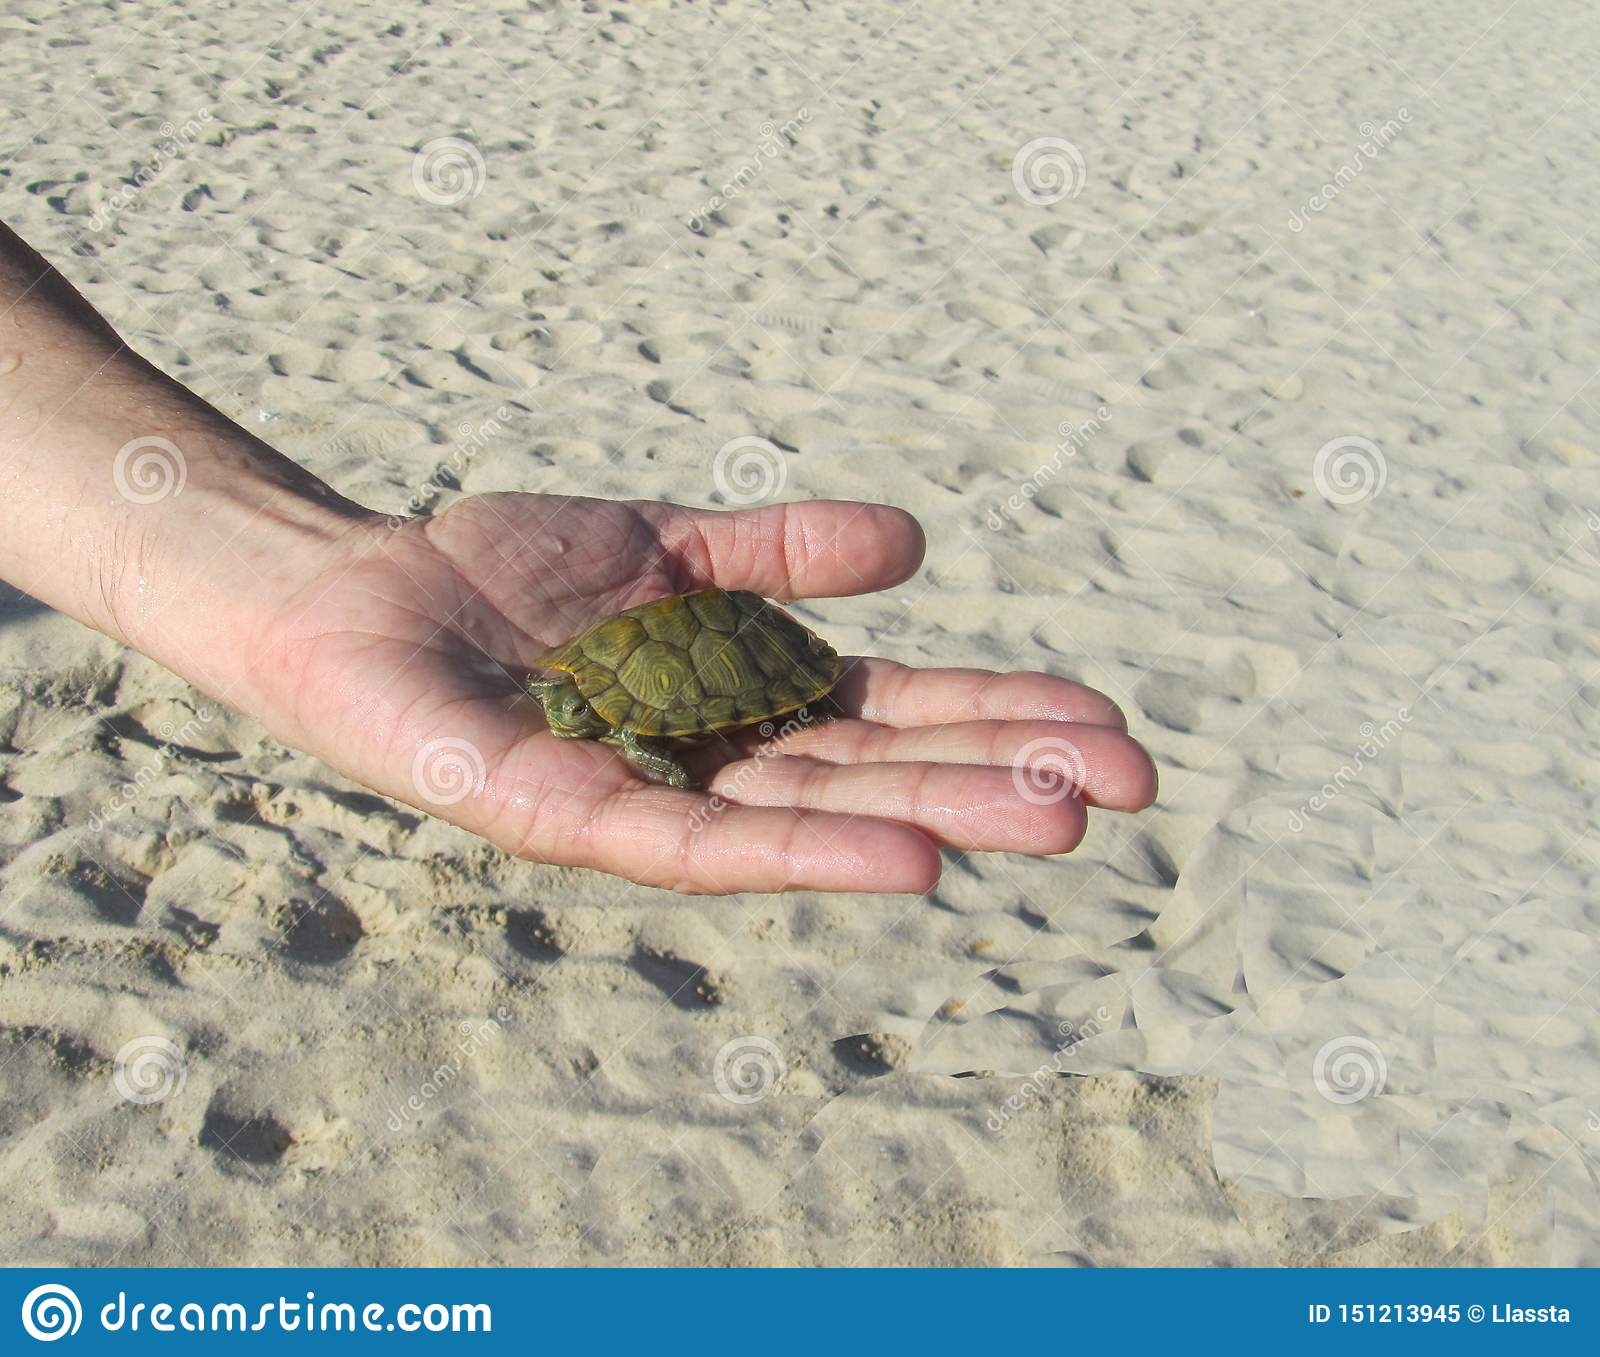 On the palm lies a small turtle